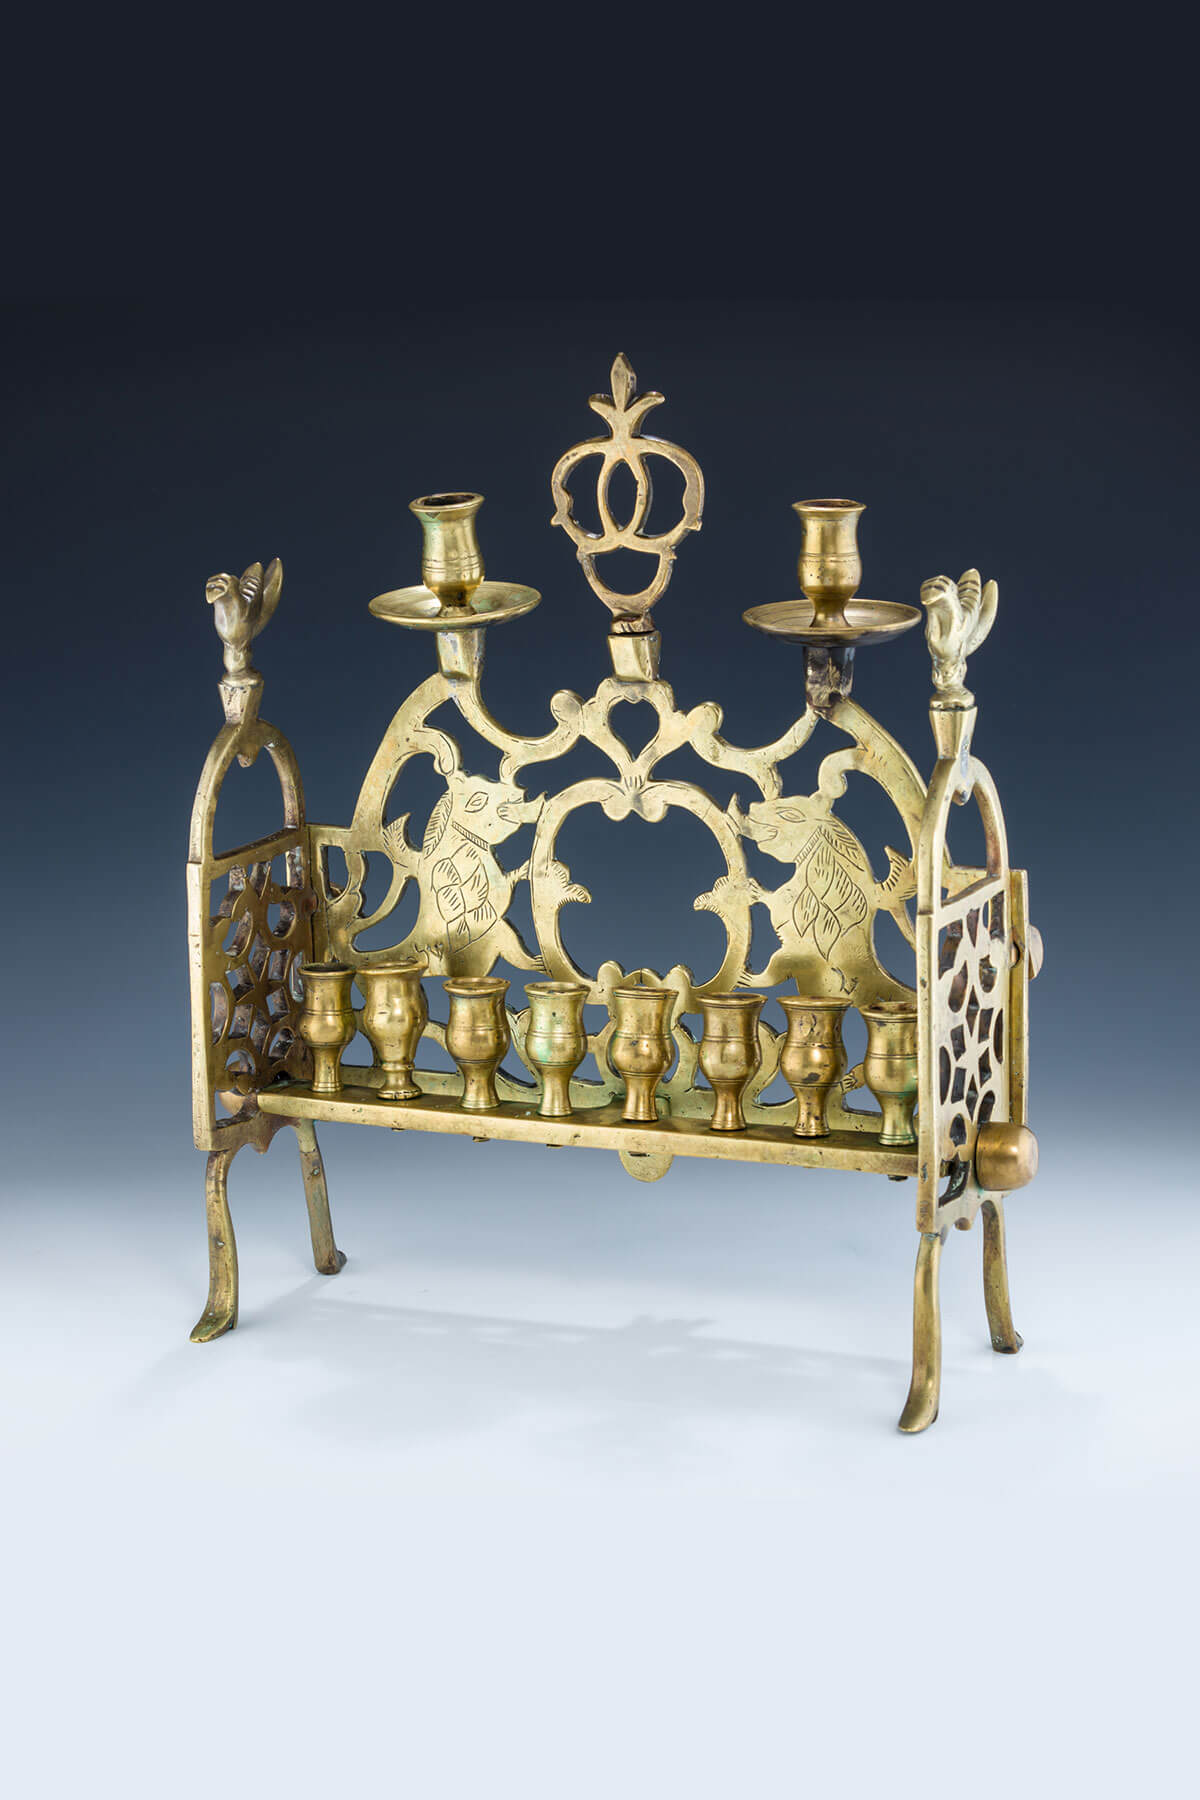 102. A Large And Important Brass Chanukah Lamp